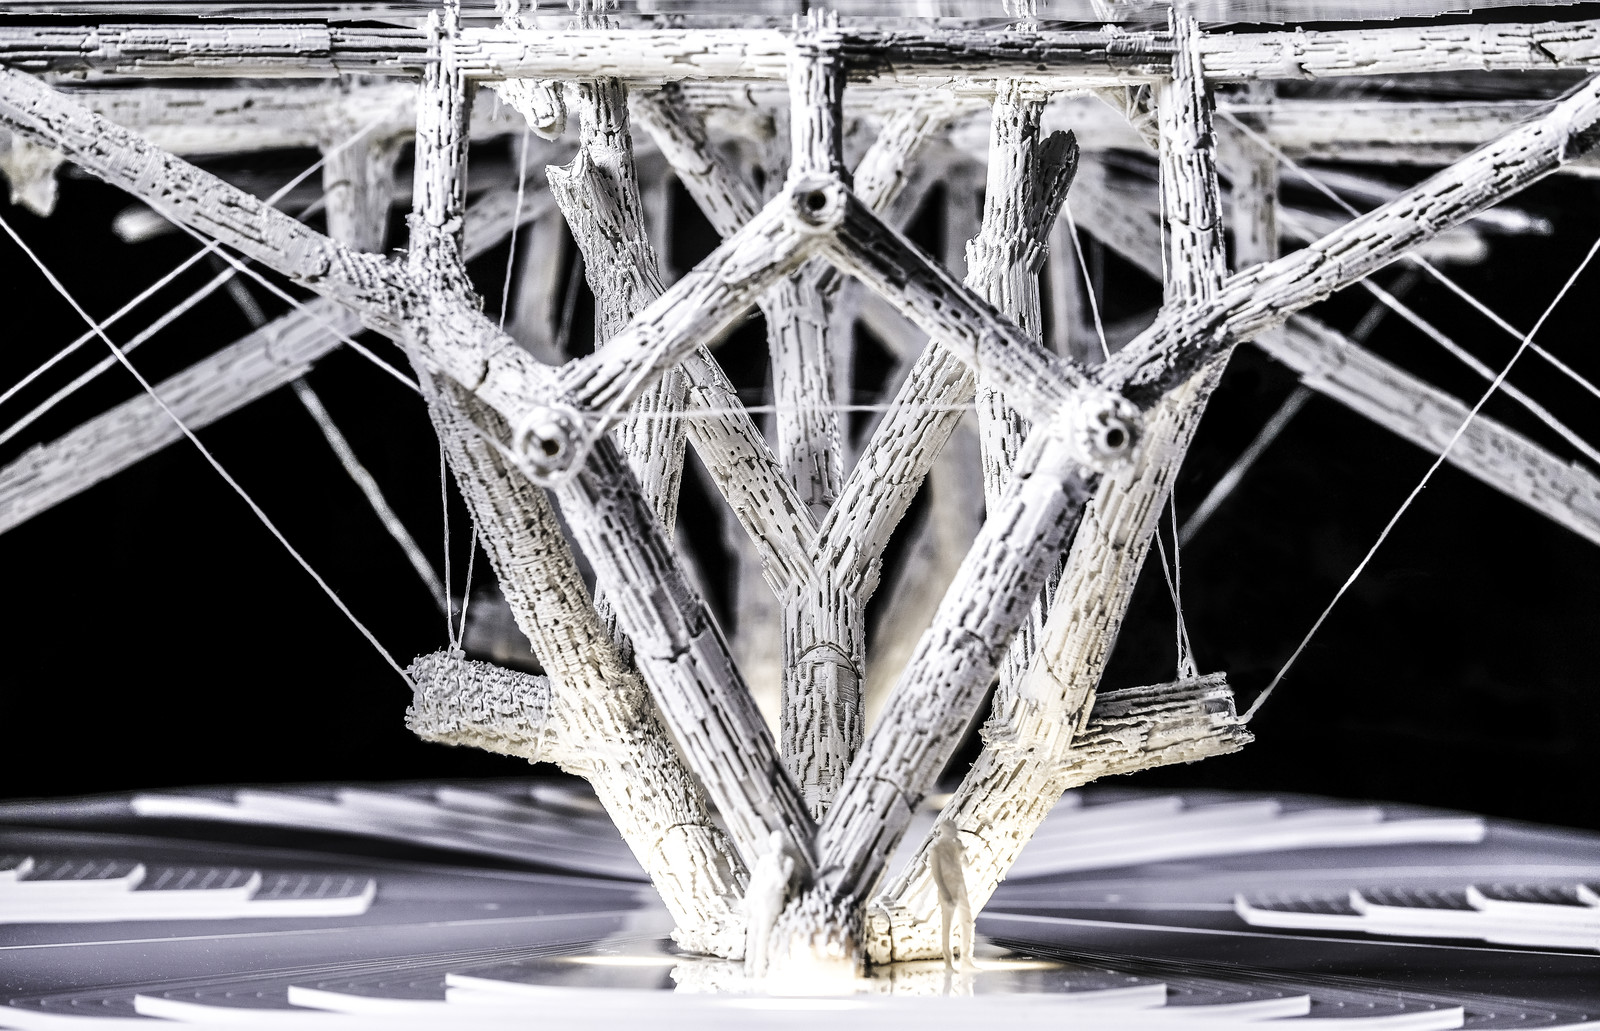 Photo showing STEREOTOMICÆQUILIBRIUM 3d printed model in Dubai Design District_AA-Visiting-School-Dubai-5_MEAL Middle East Architecture Lab